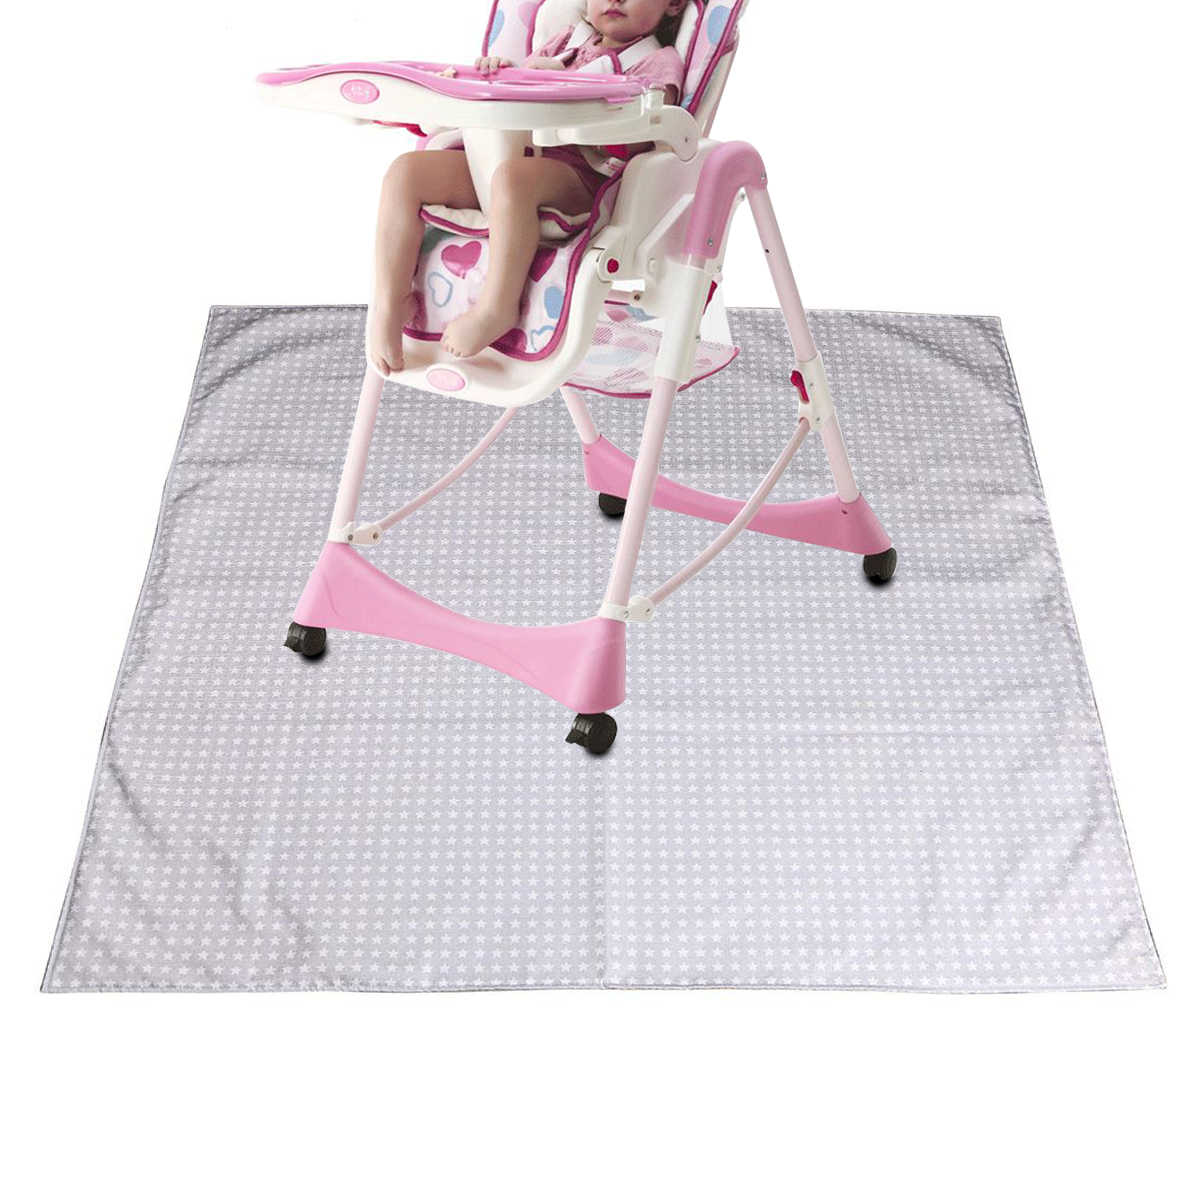 Baby High Chair Floor Mat Protector